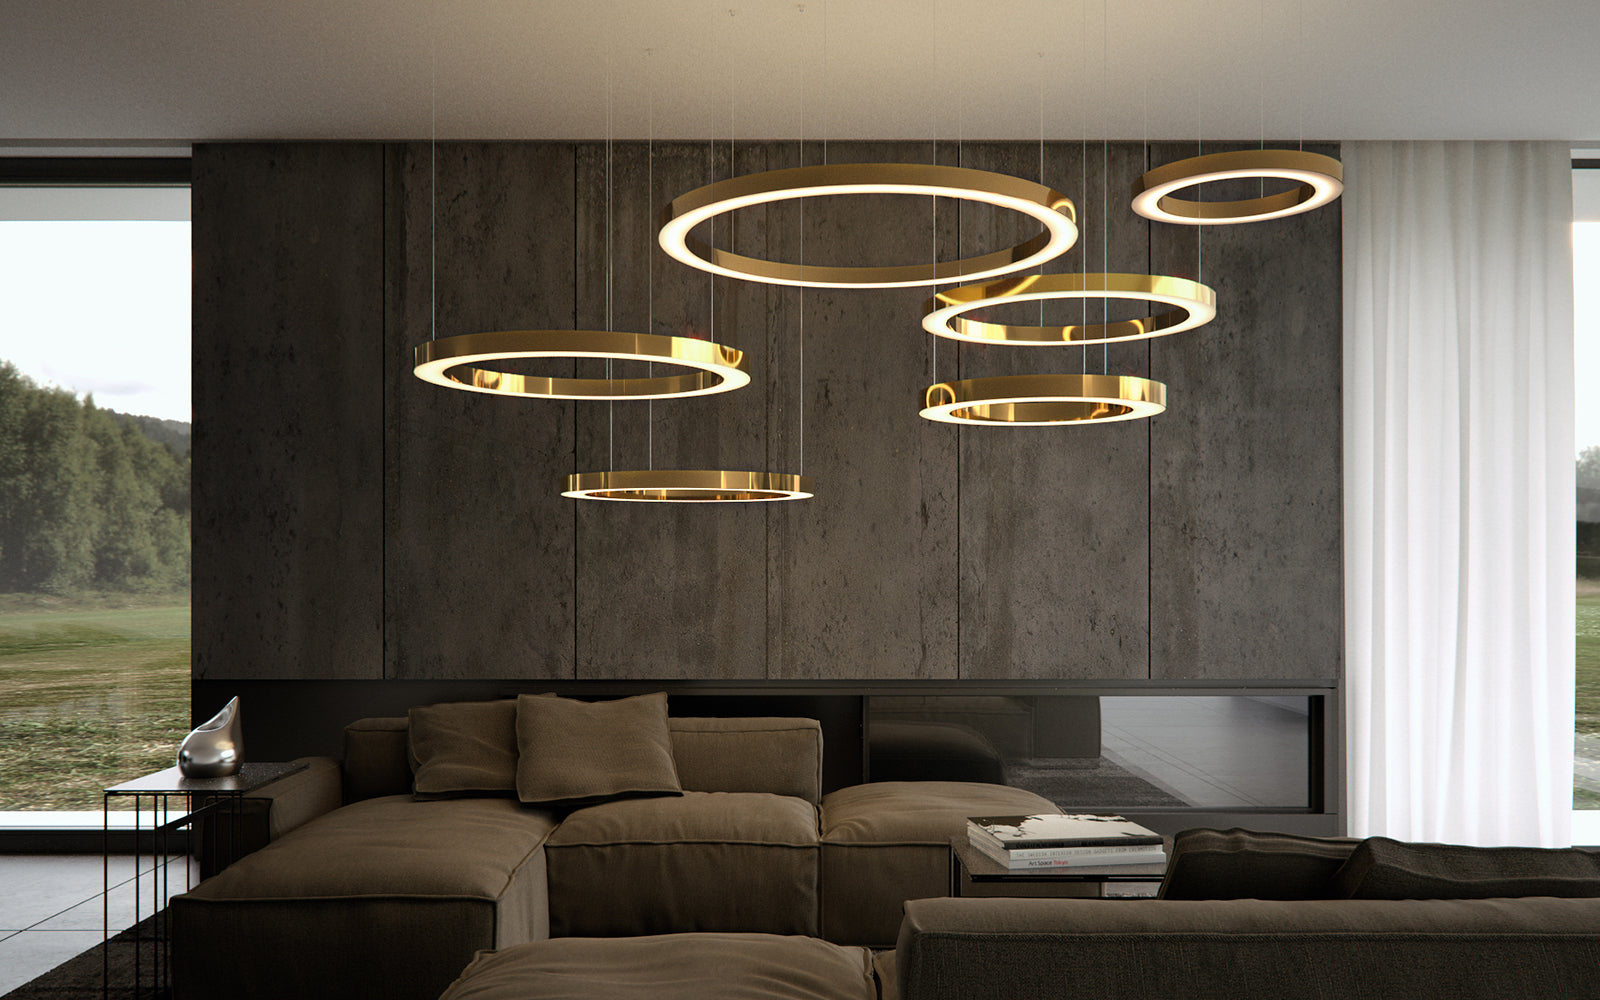 design house lighting. Mahlu By Cameron Design House, Circular Led Lighting, Luminaire, Henge Light House Lighting I